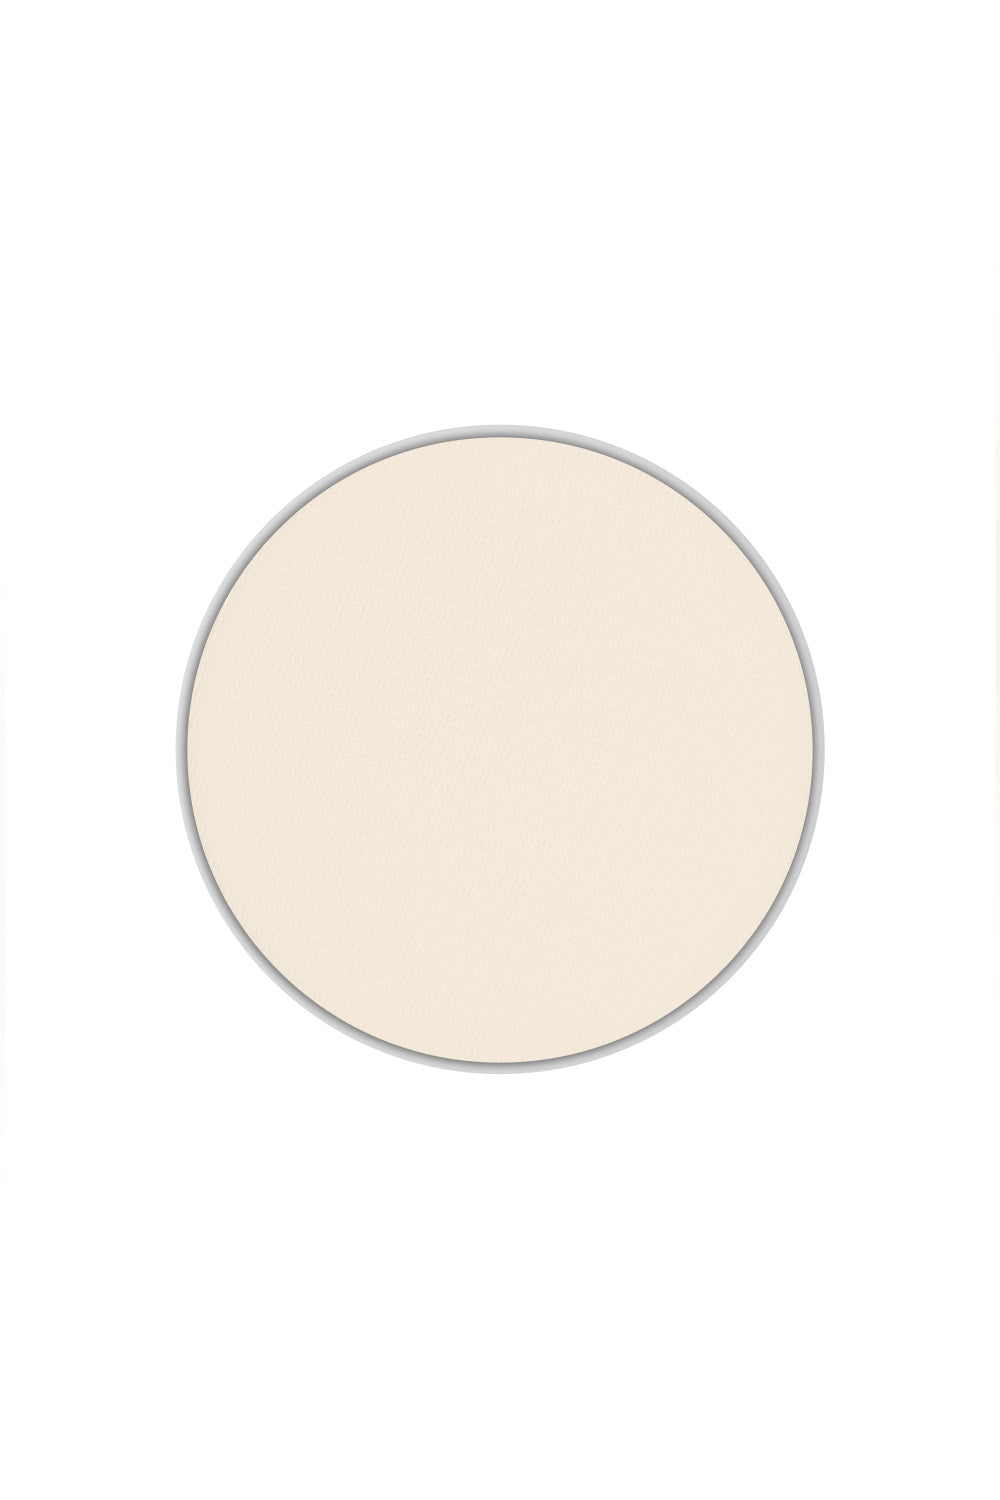 Type 1 Eyeshadow Pan - Ivory Matte